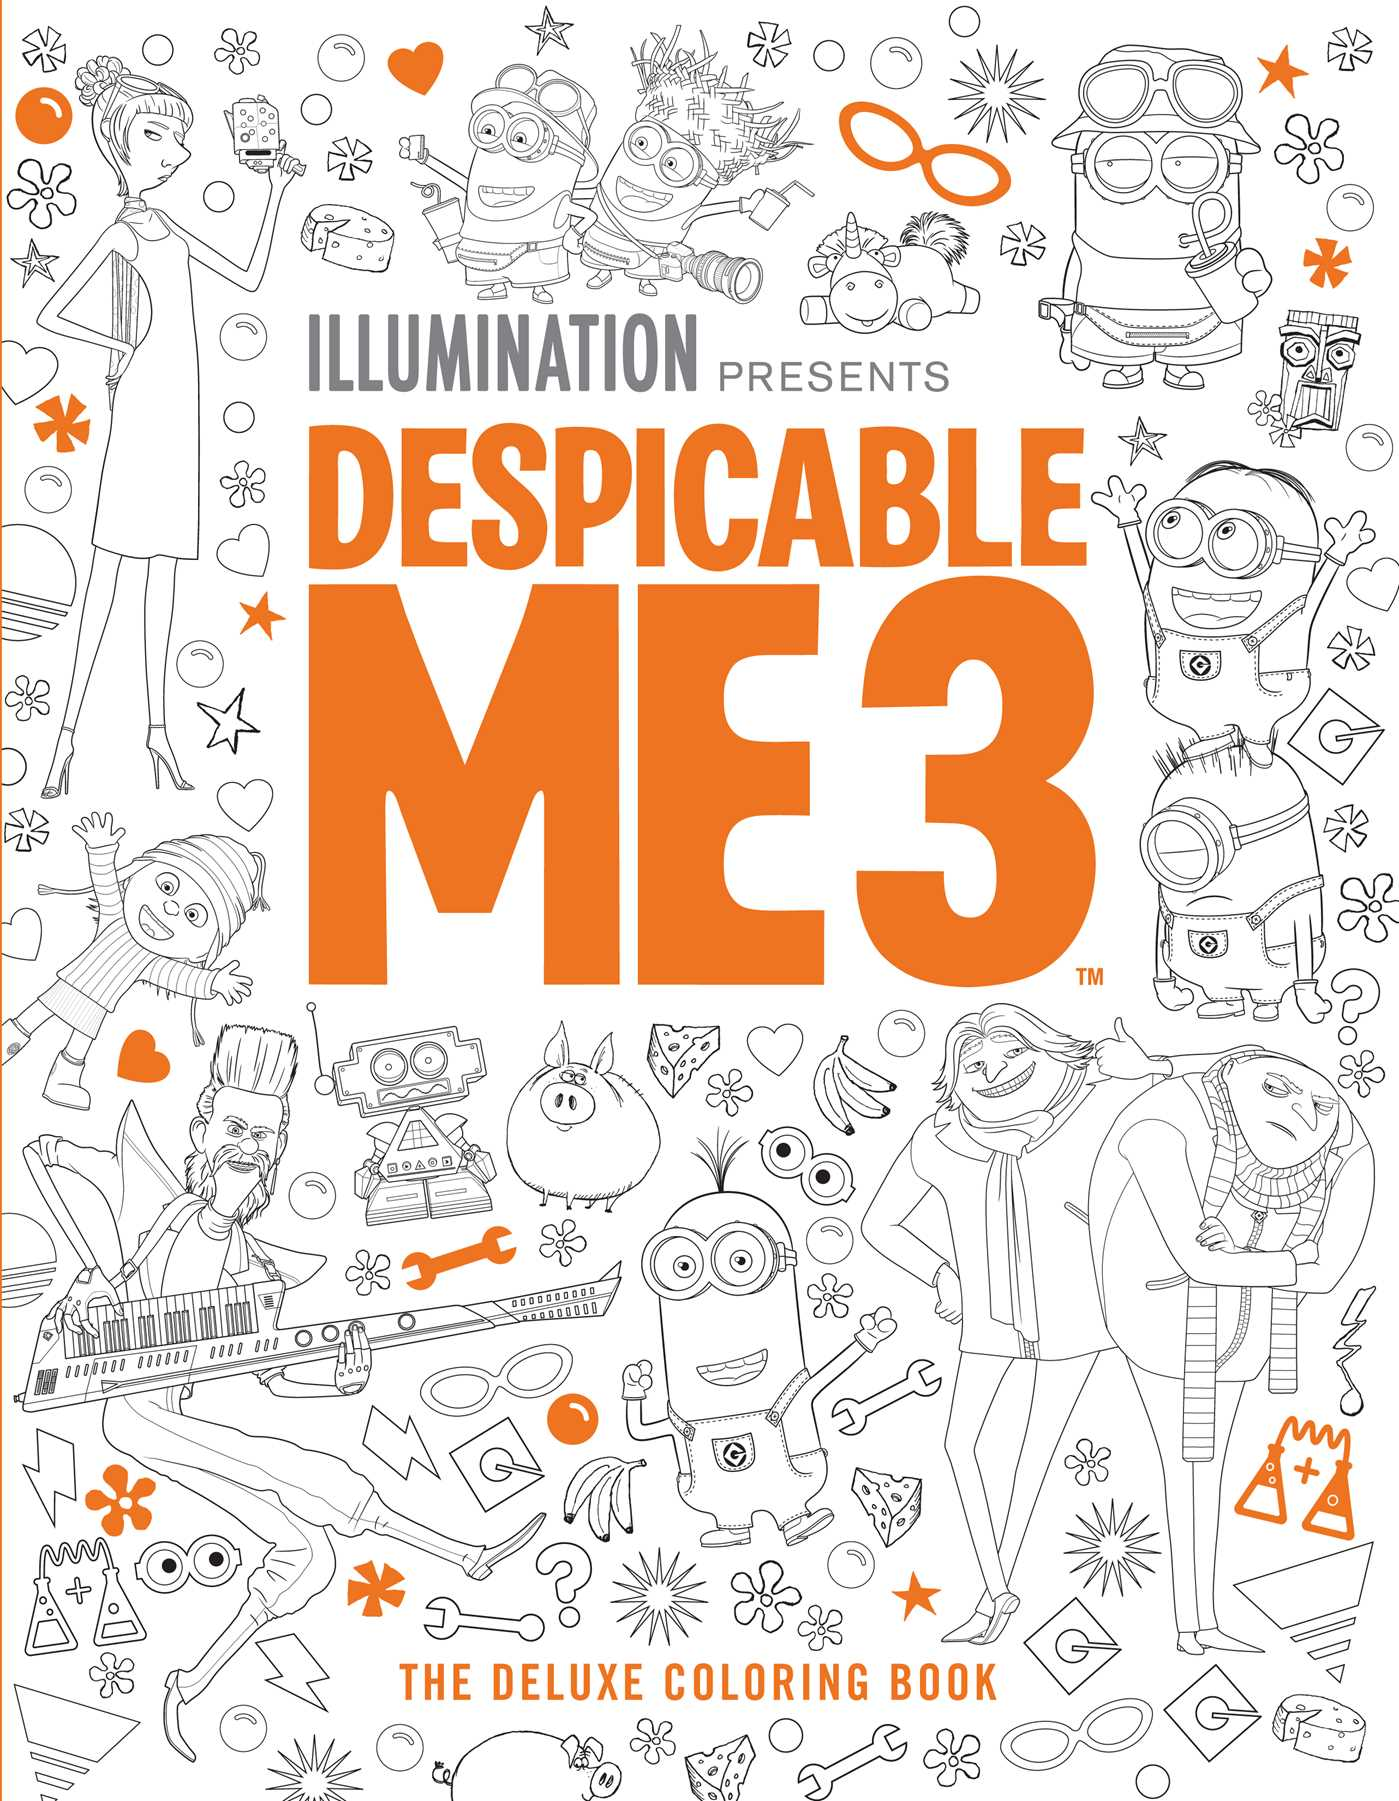 Book Cover Image Jpg Despicable Me 3 The Deluxe Coloring